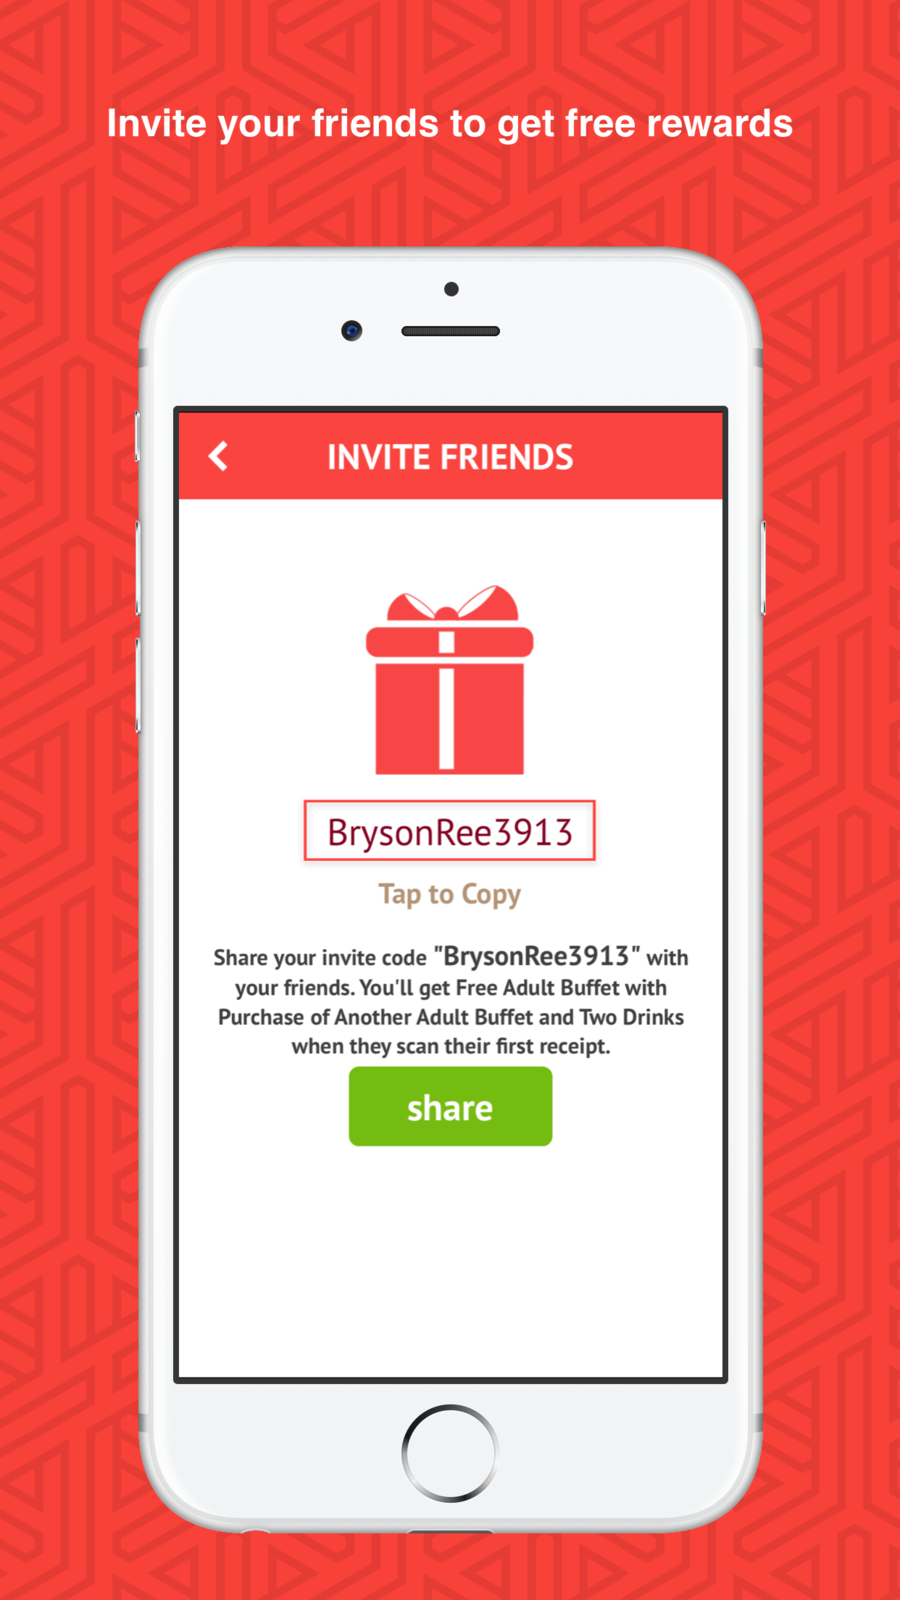 Mycicis Lifestyle Drink Apps Ios Ios Apps Html Design Templates Invite Your Friends